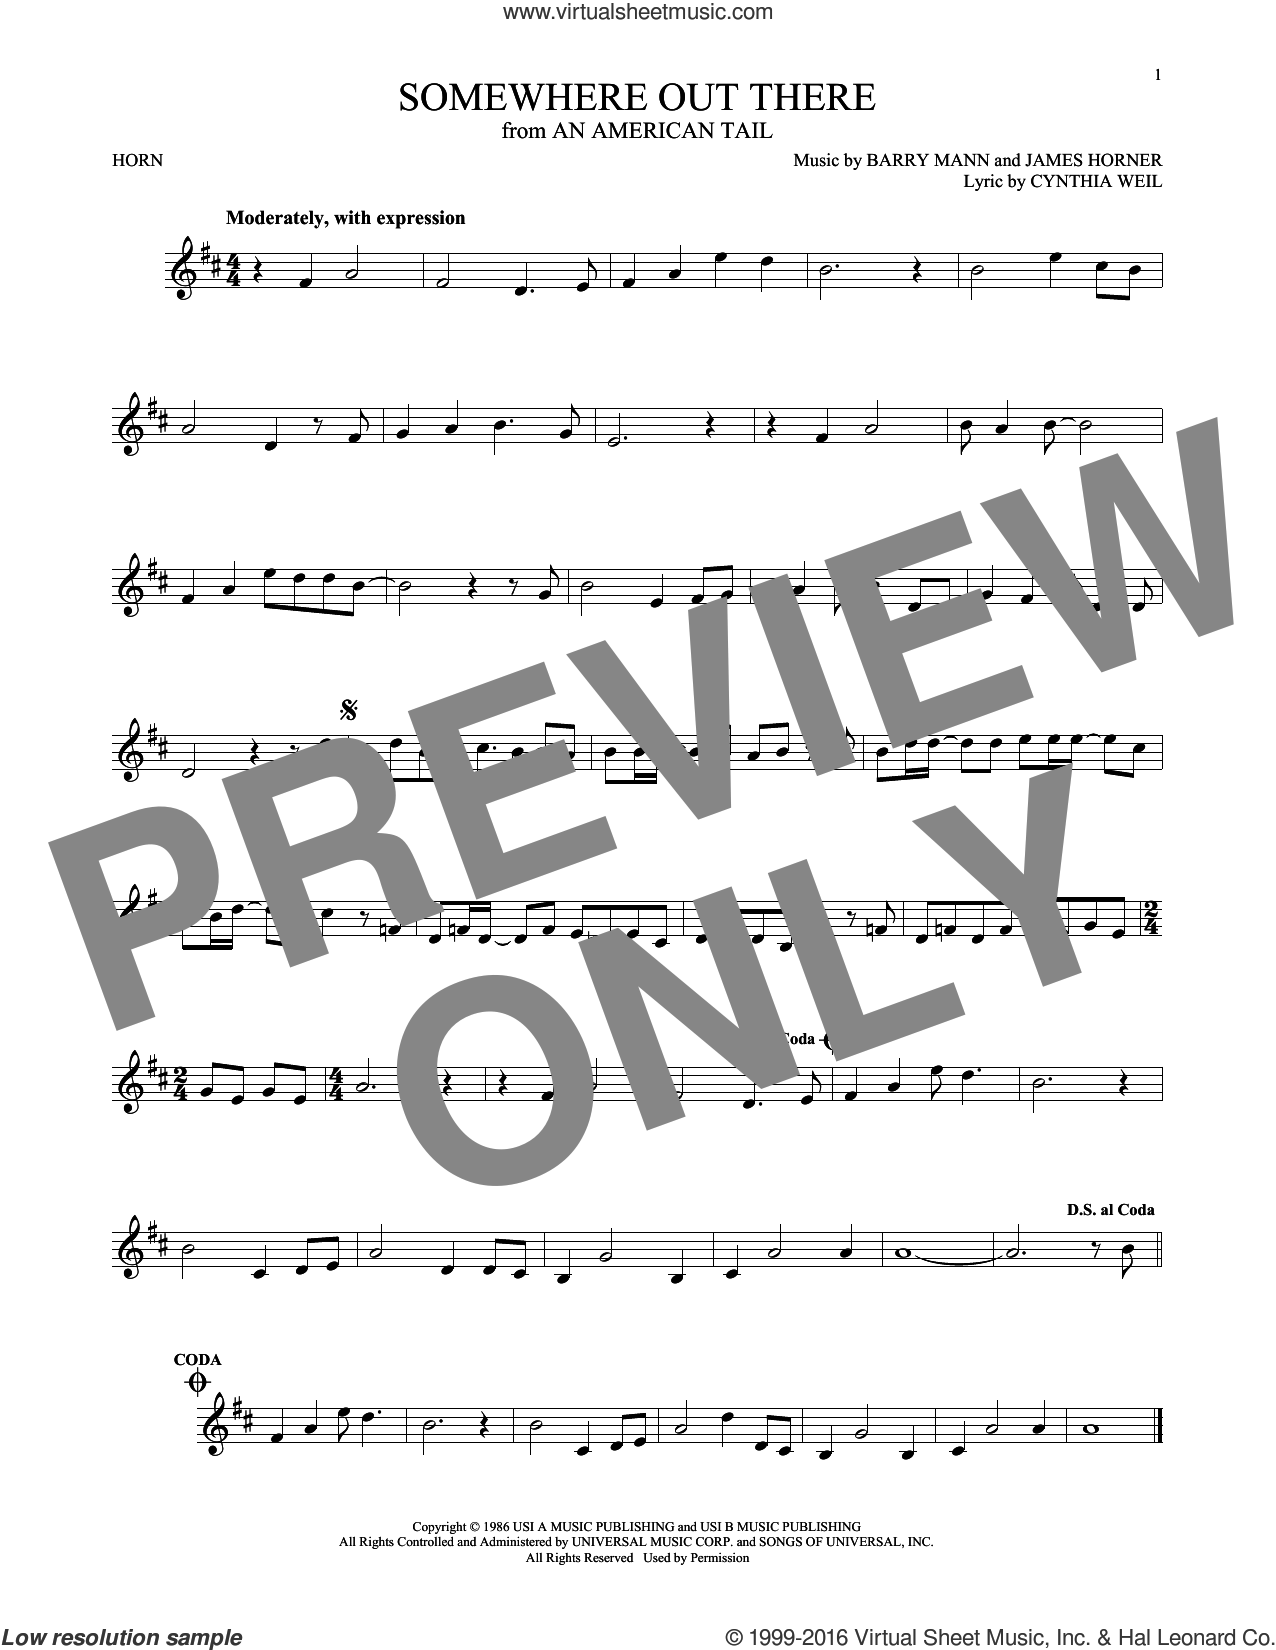 Somewhere Out There sheet music for horn solo by Linda Ronstadt & James Ingram, Barry Mann, Cynthia Weil and James Horner, intermediate skill level